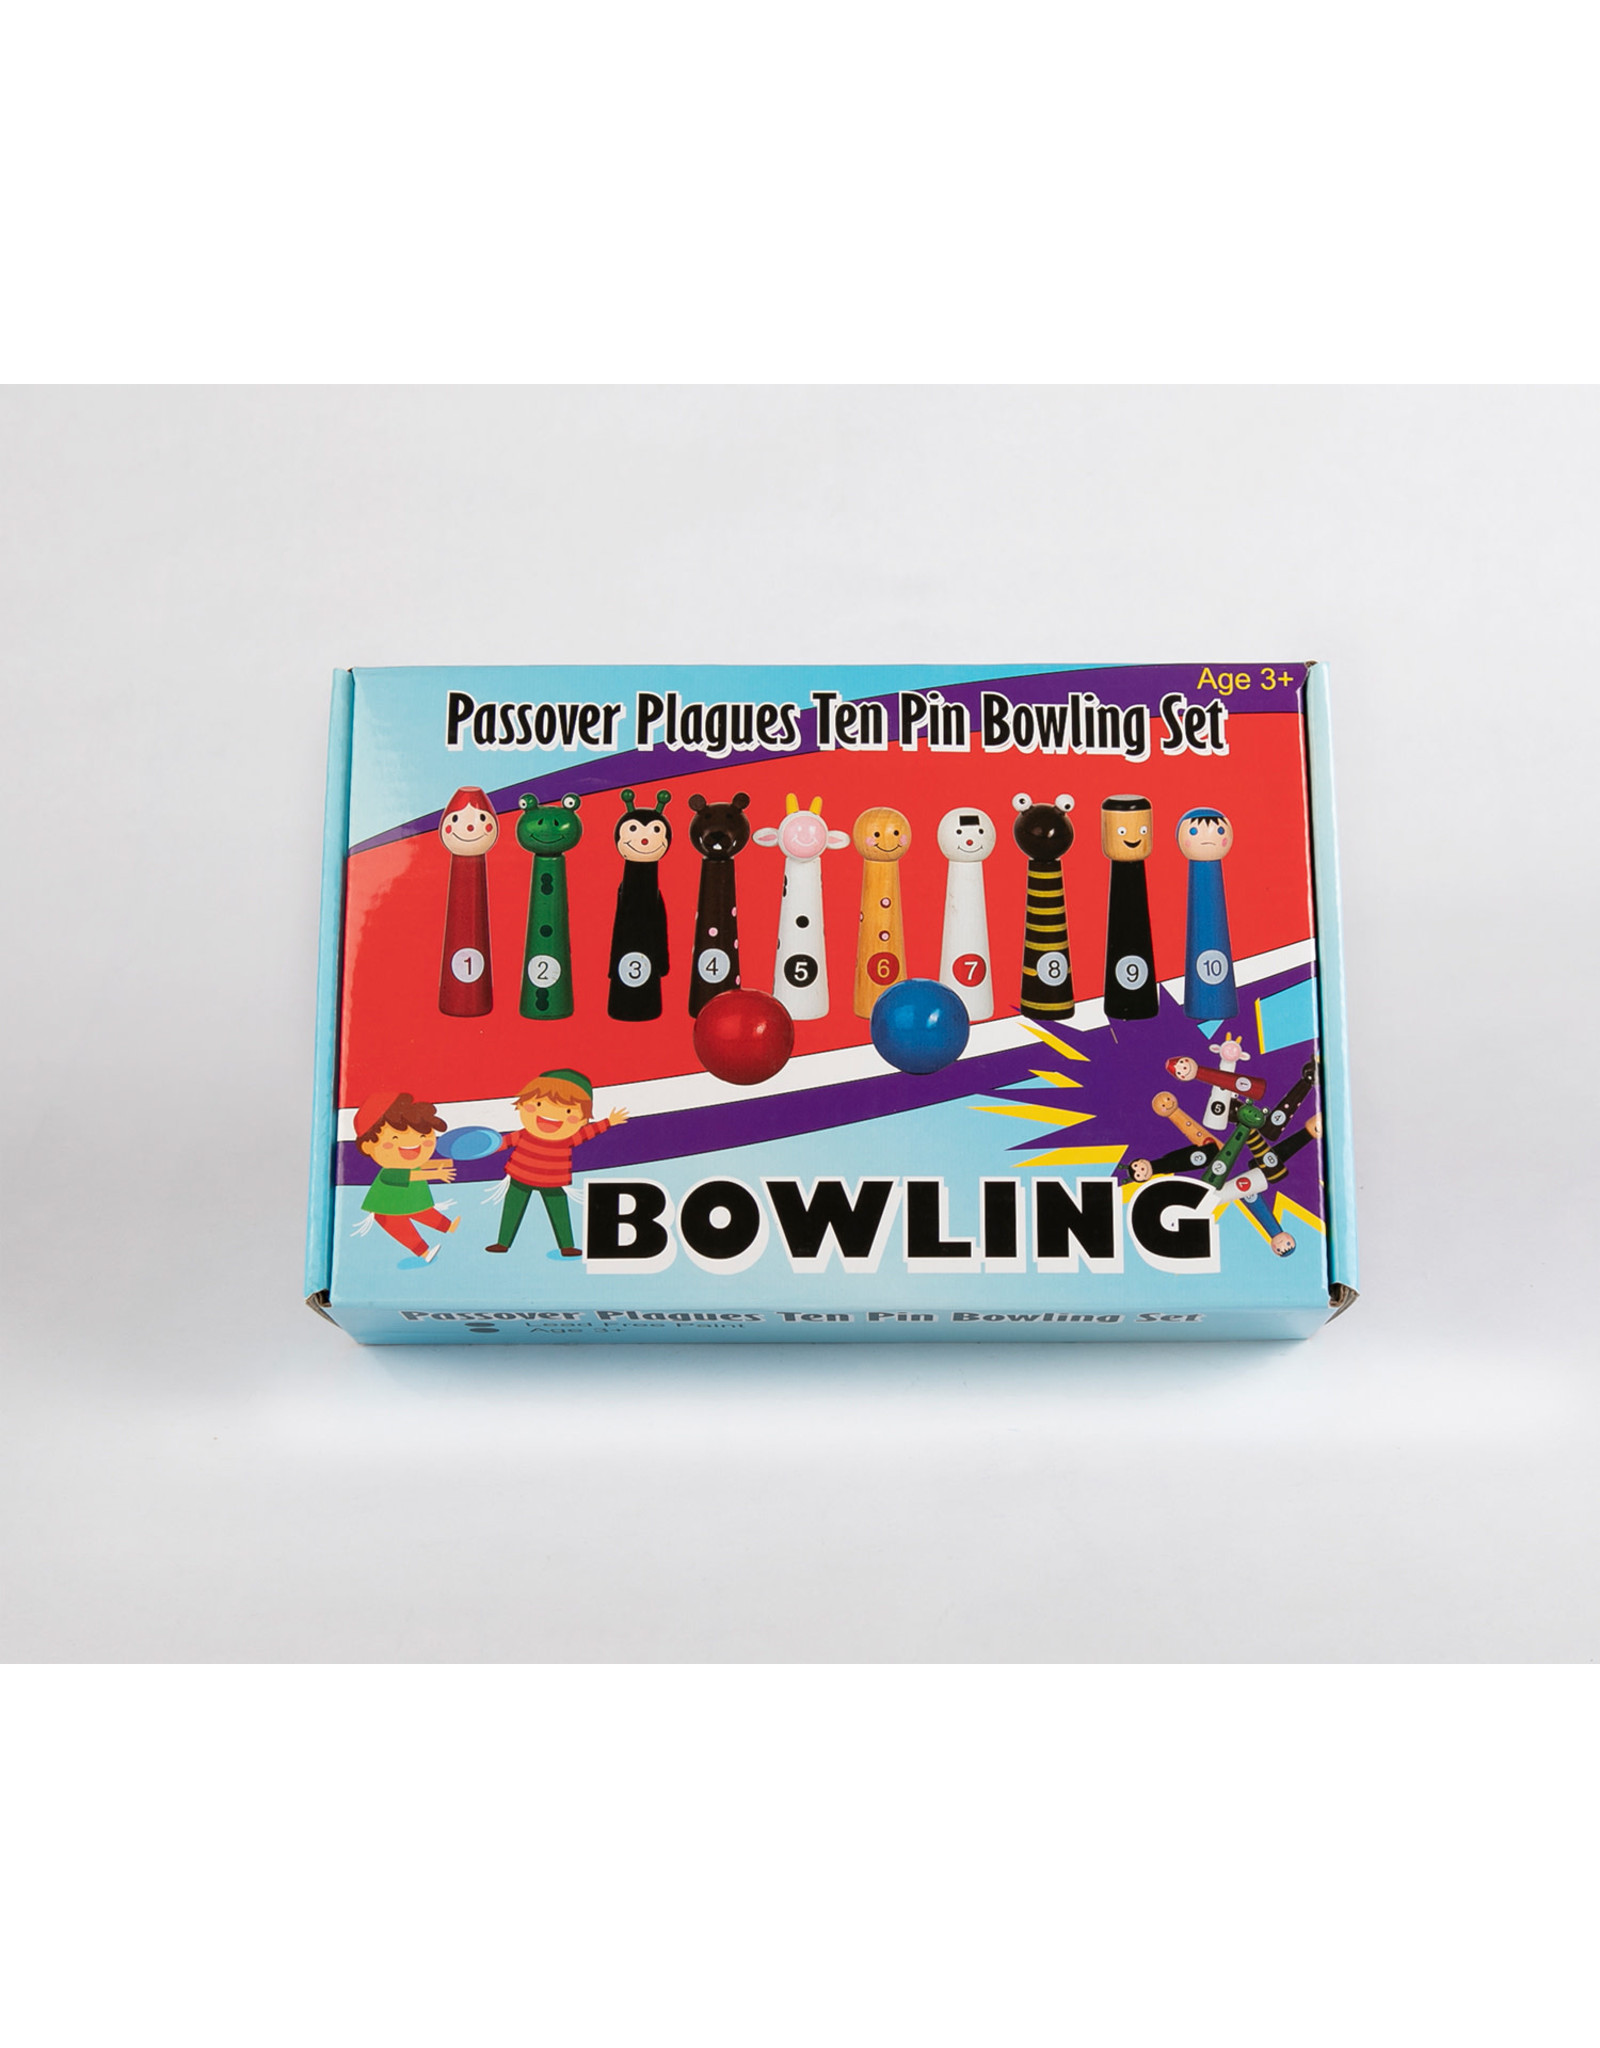 Bowling plagues wood